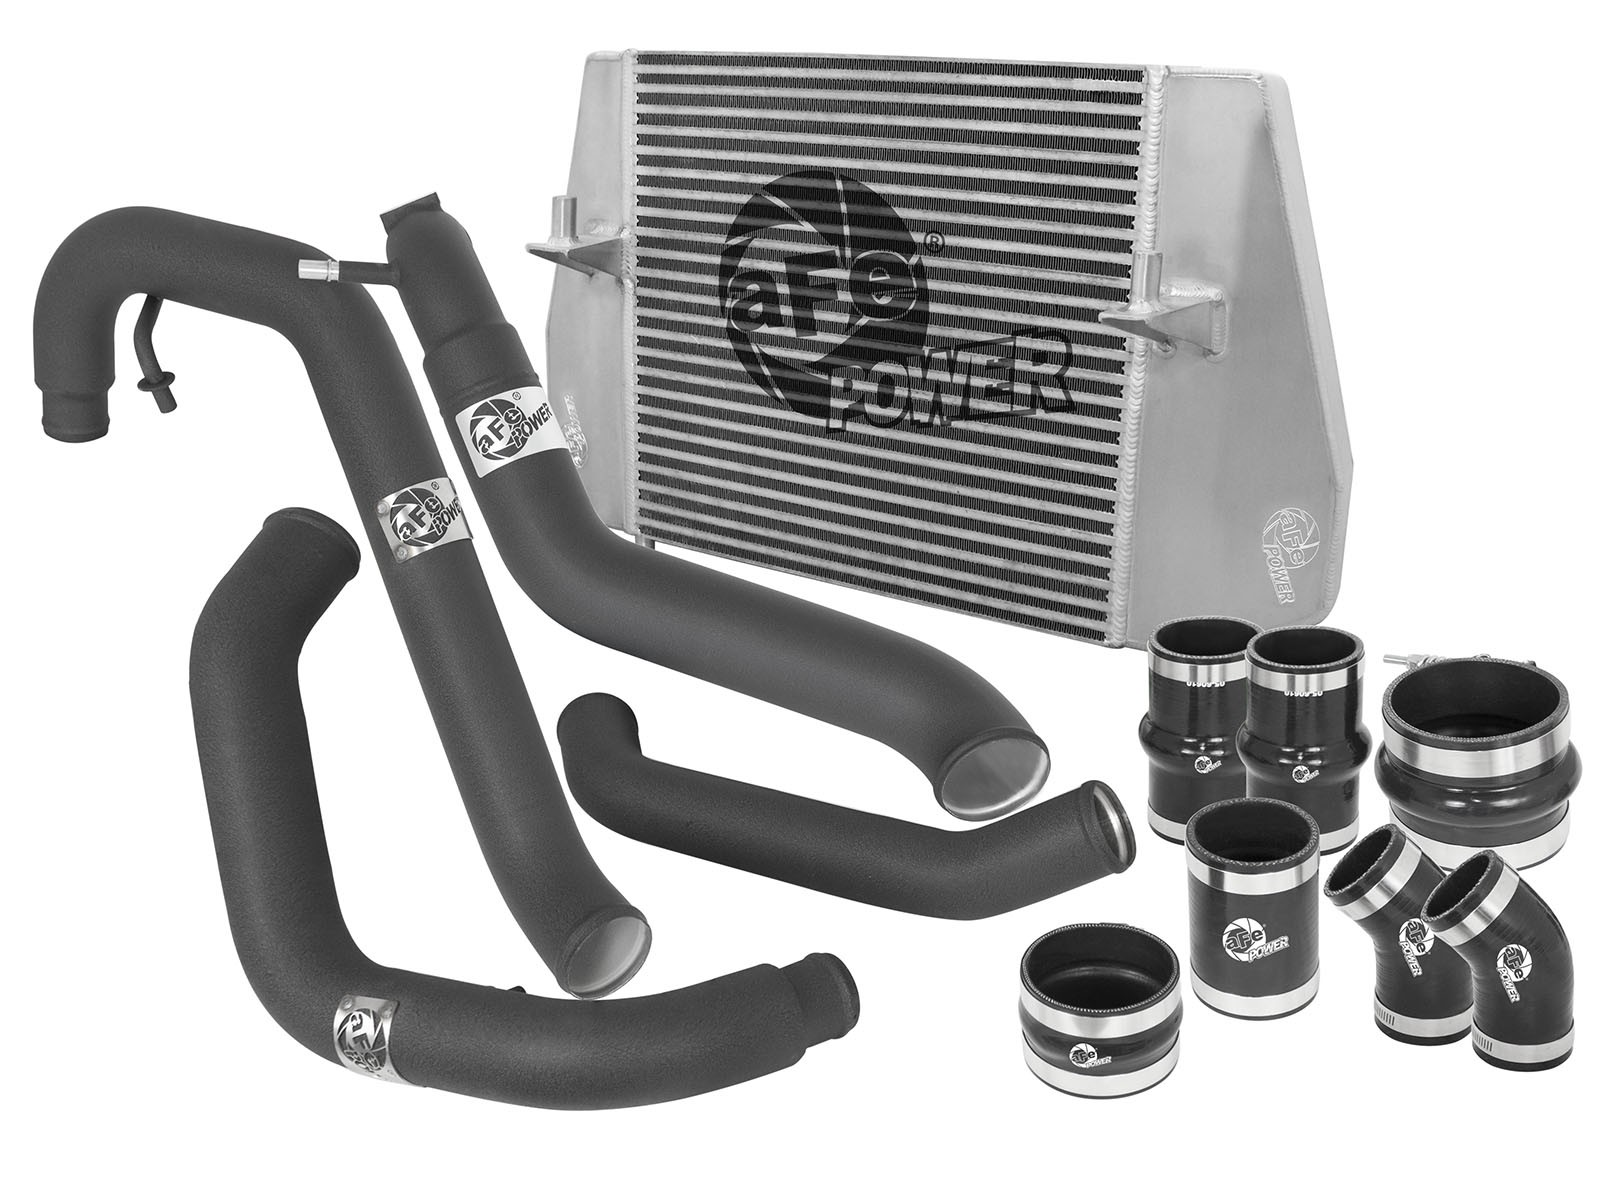 aFe POWER 46-20122-B BladeRunner GT Series Intercooler with Tubes